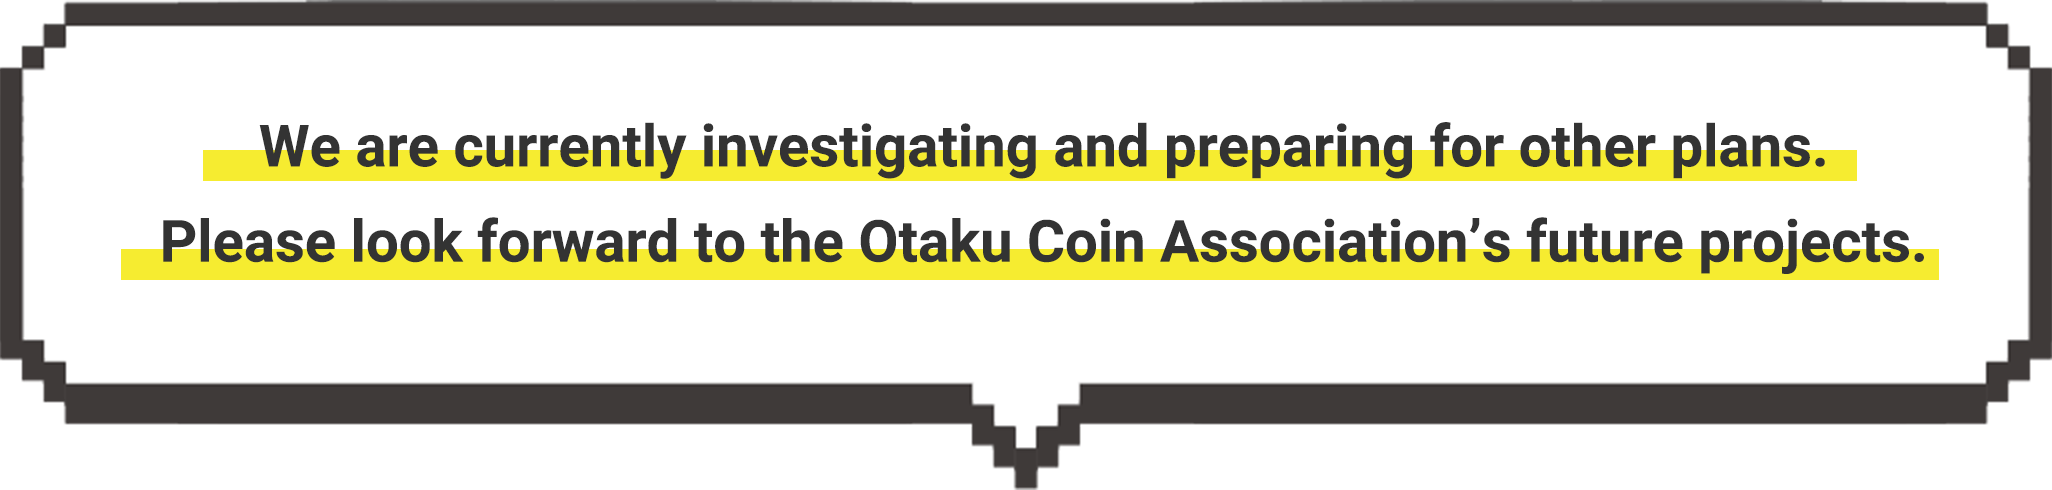 We are currently investigating and preparing for other plans. Please look forward to the Otaku Coin Association's future projects.